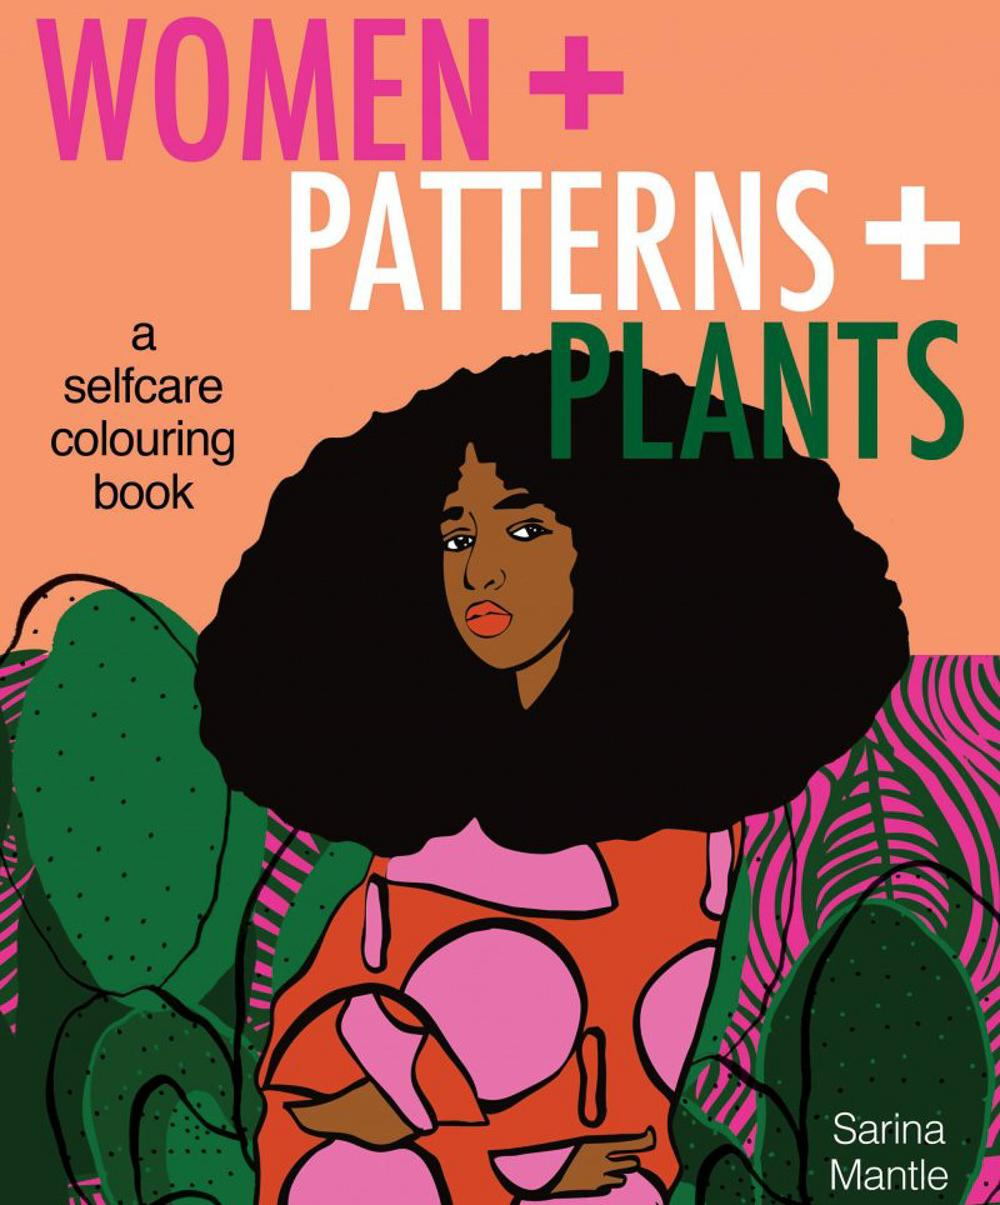 Women + Patterns + Plants by Sarina Mantle; cover image featuring a Black woman wearing brightly-coloured garments and surrounded by verdant green life